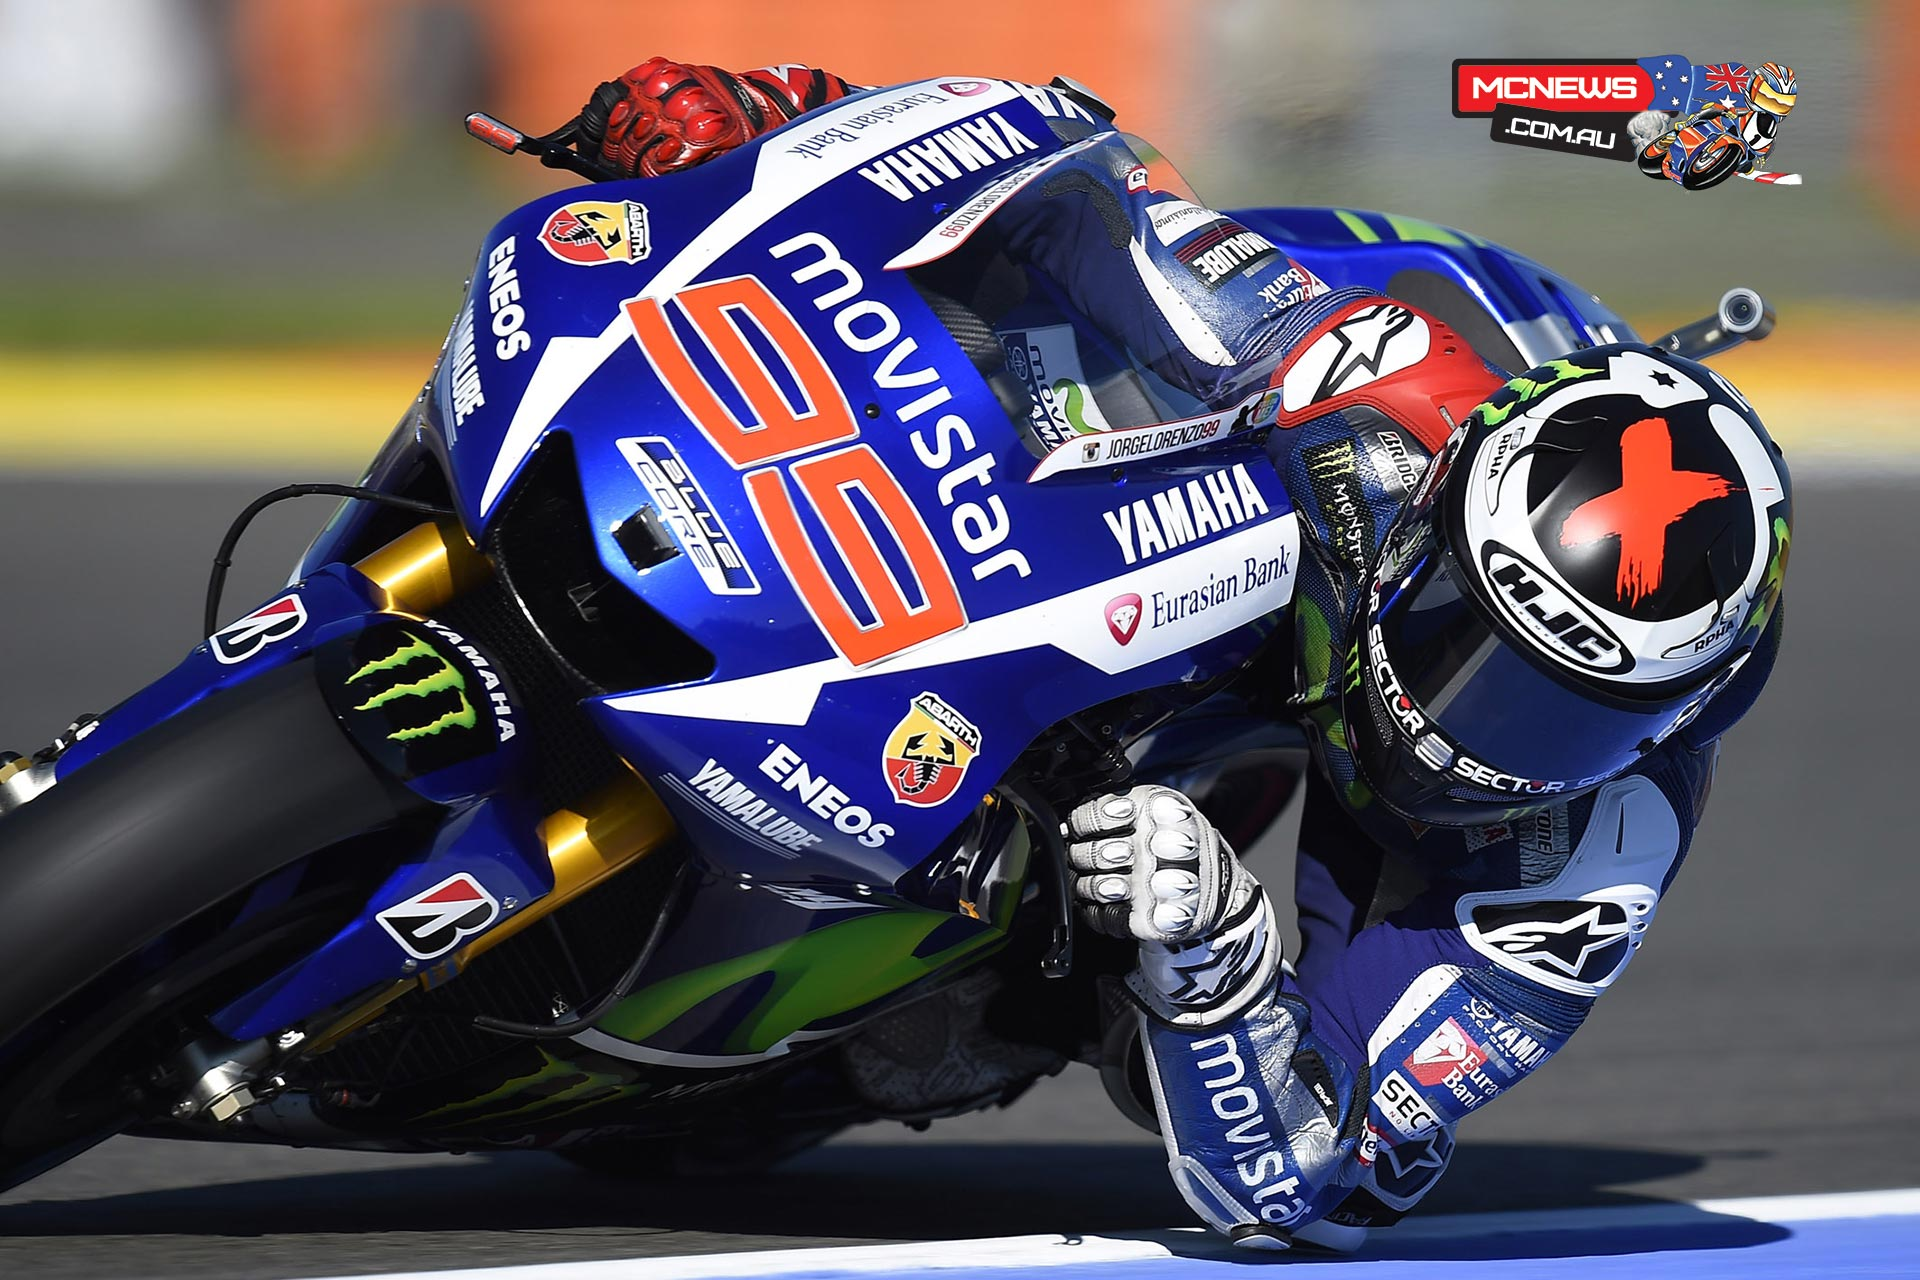 Jorge Lorenzo finished on top of the combined timesheets after Friday's tension-fuelled Practice at the Valencia GP ahead of Marquez and Pedrosa, with his title rival and teammate Valentino Rossi in fifth.